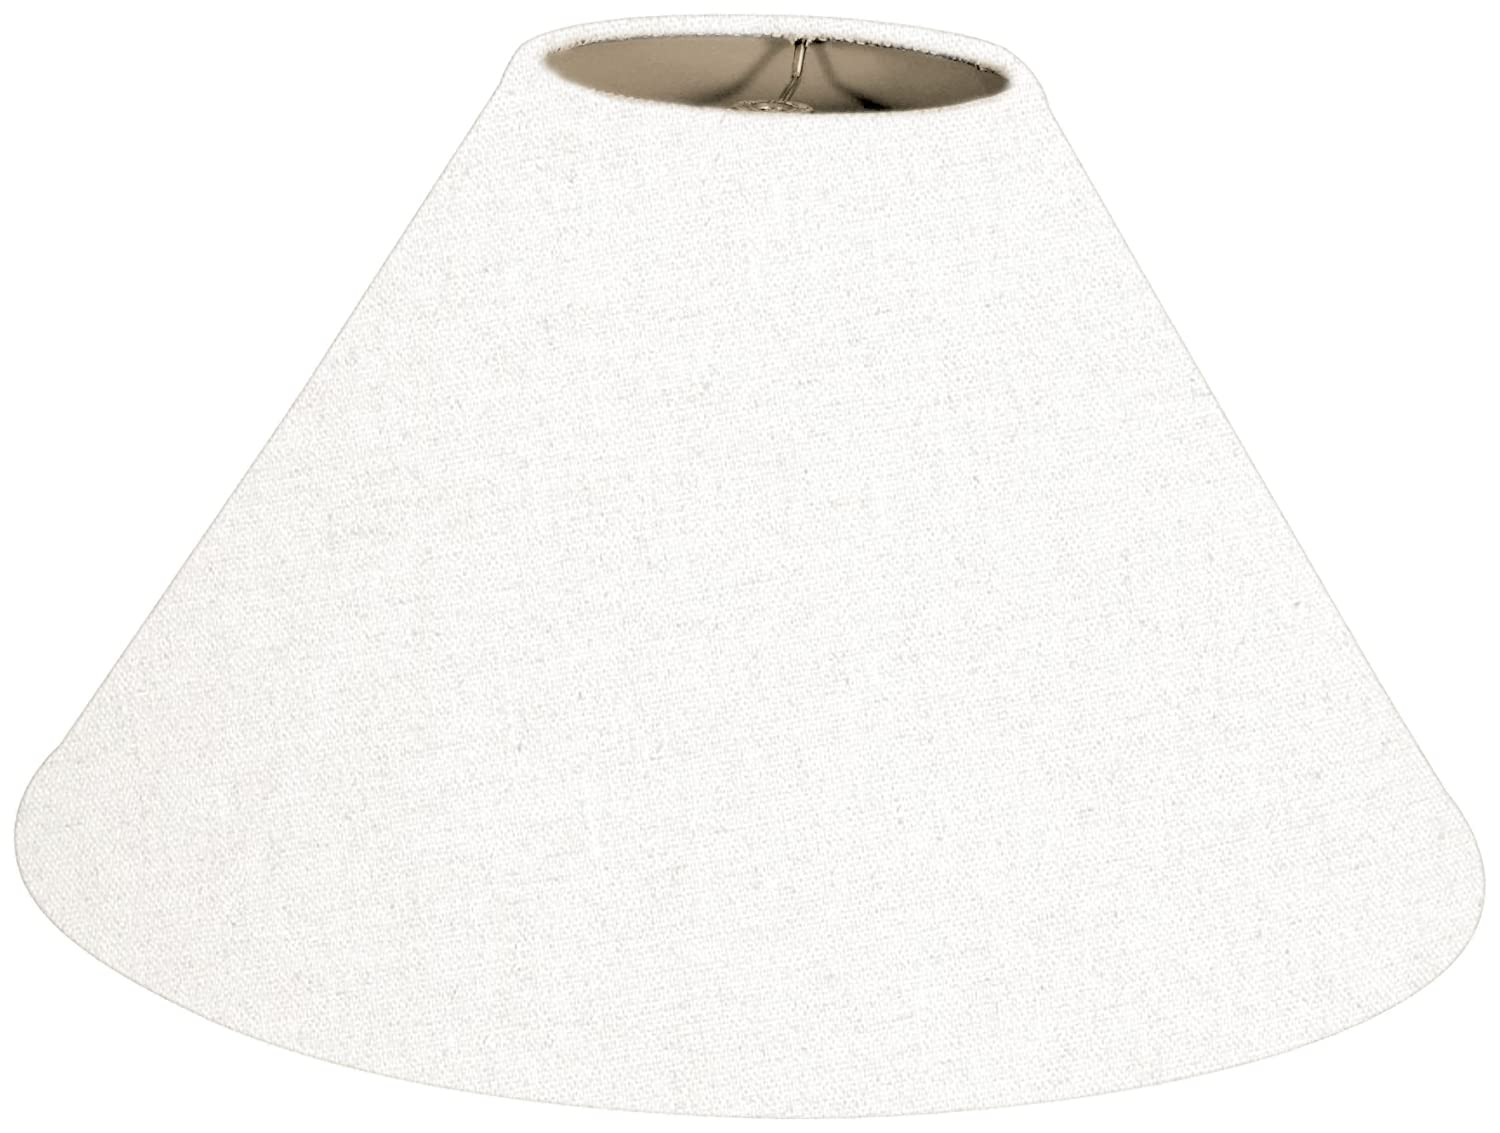 Amazon.com: Royal Designs Coolie Empire Hardback Lamp Shade, Linen ...